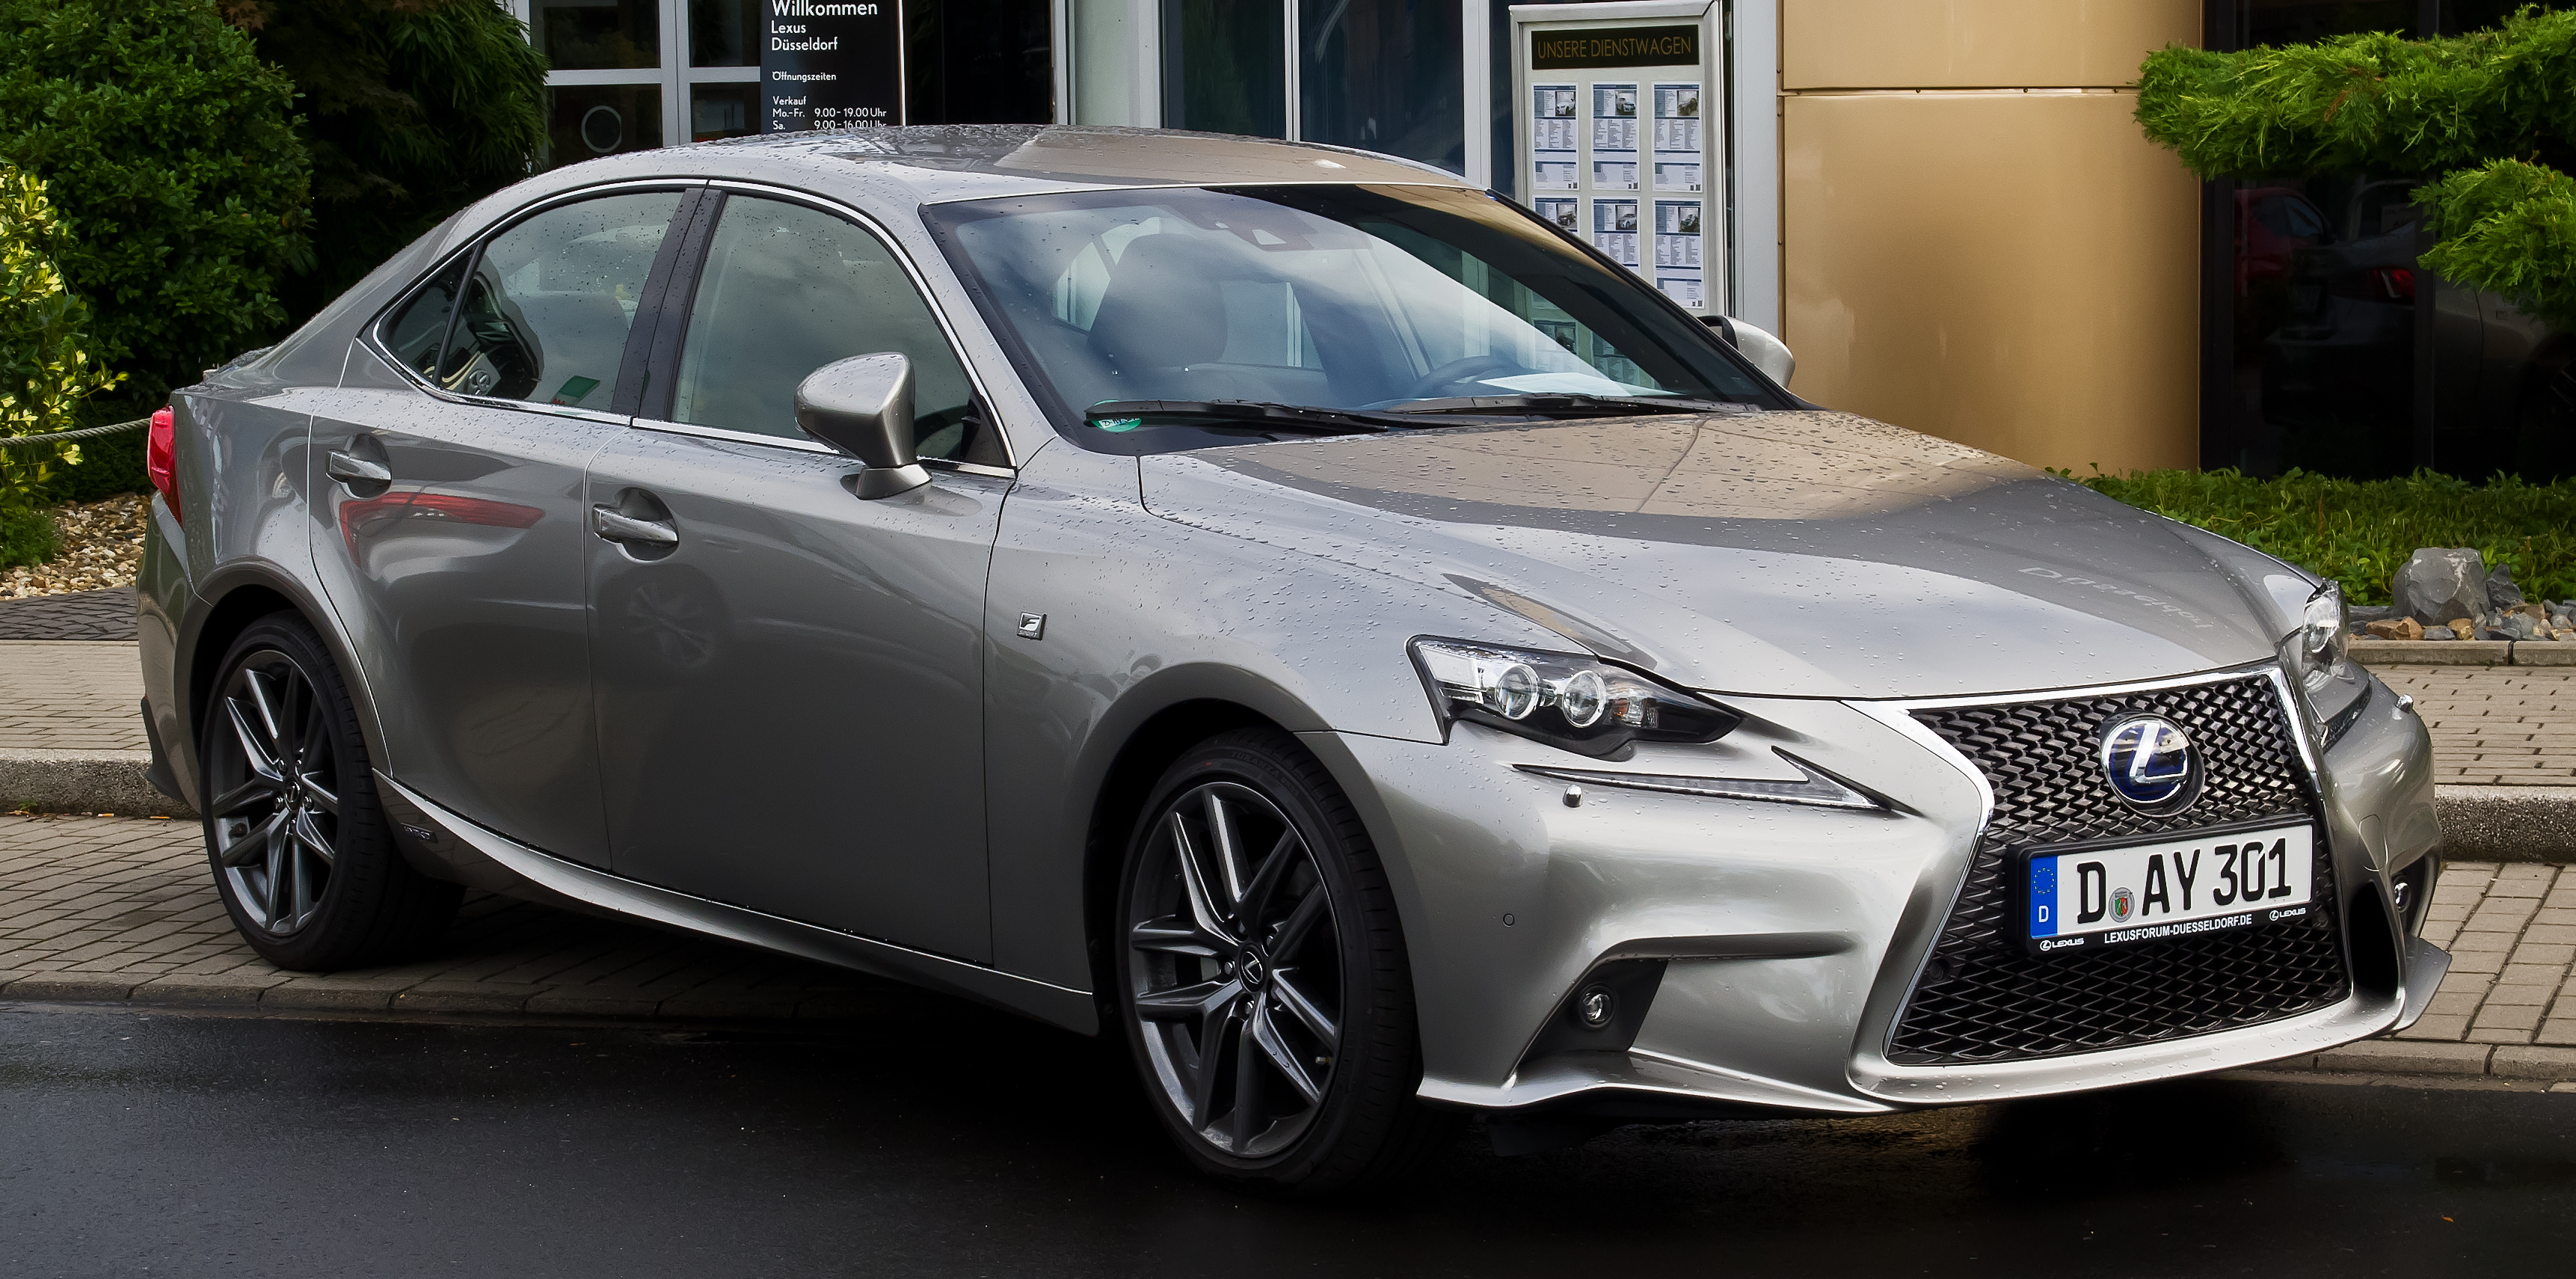 lexus_is_300h